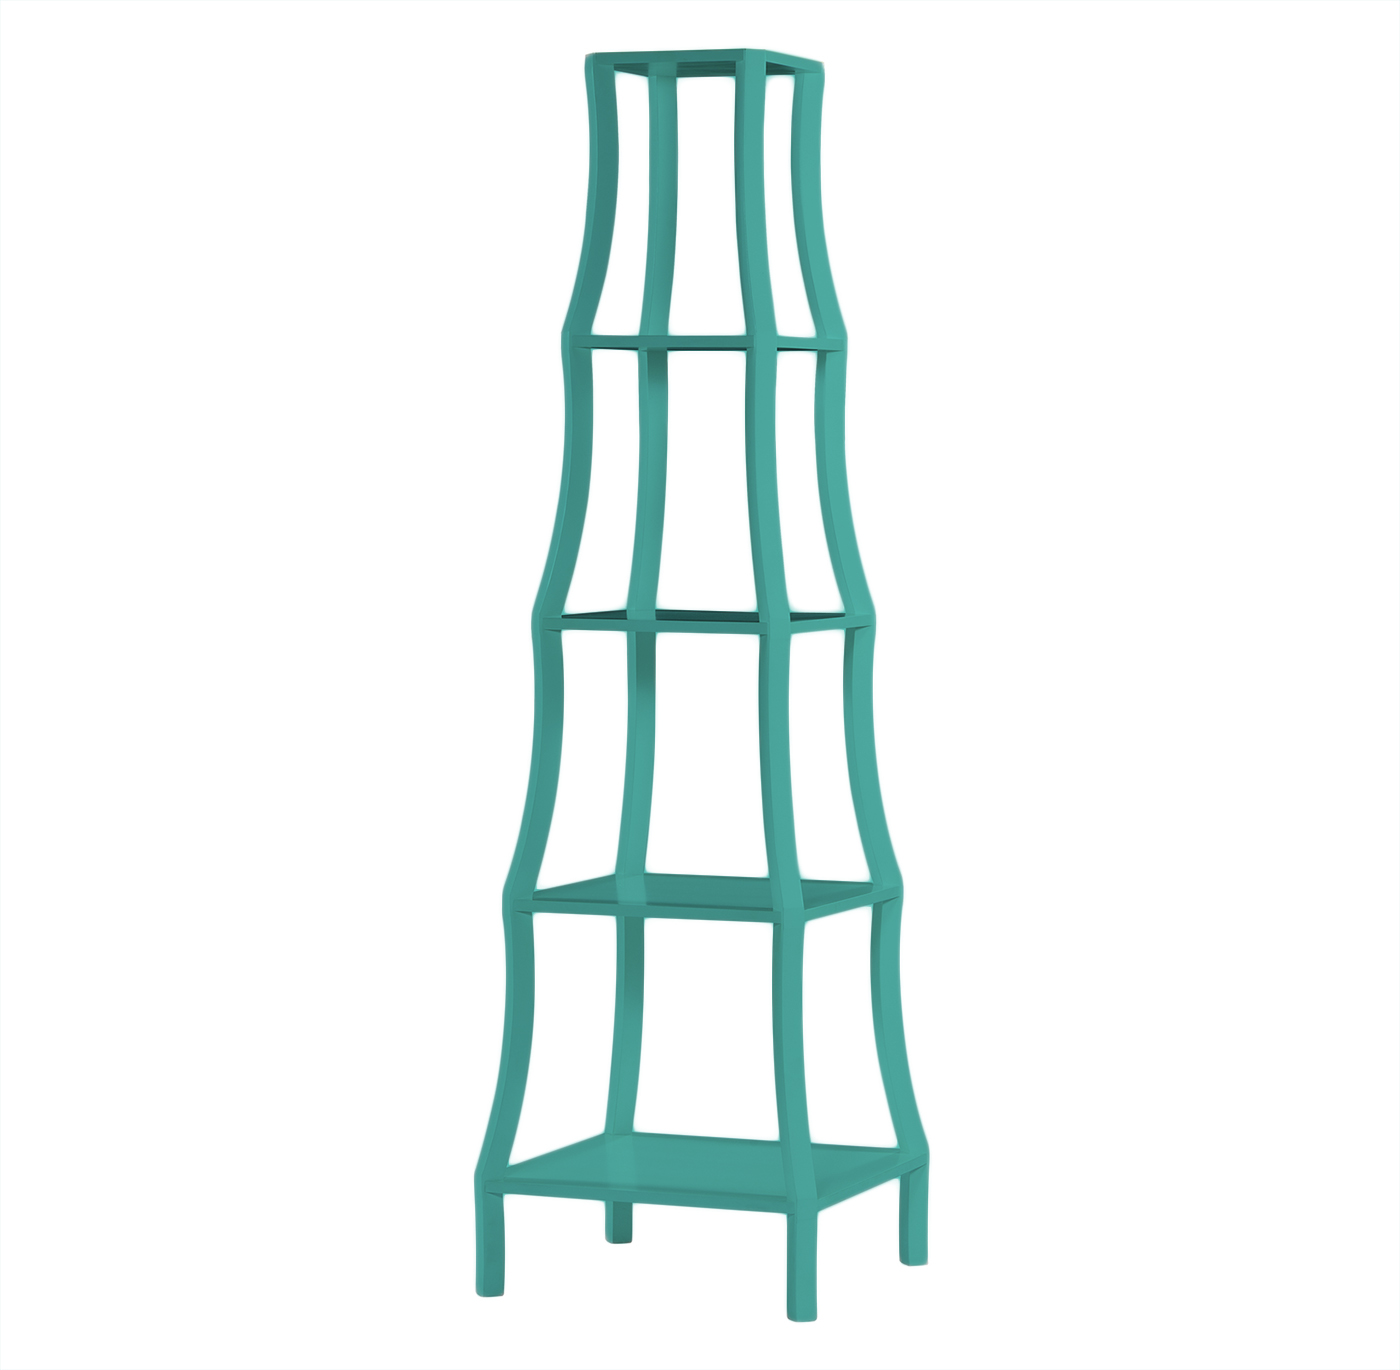 Chamberlain Hollywood Regency Turquoise 5 Tier Etagere